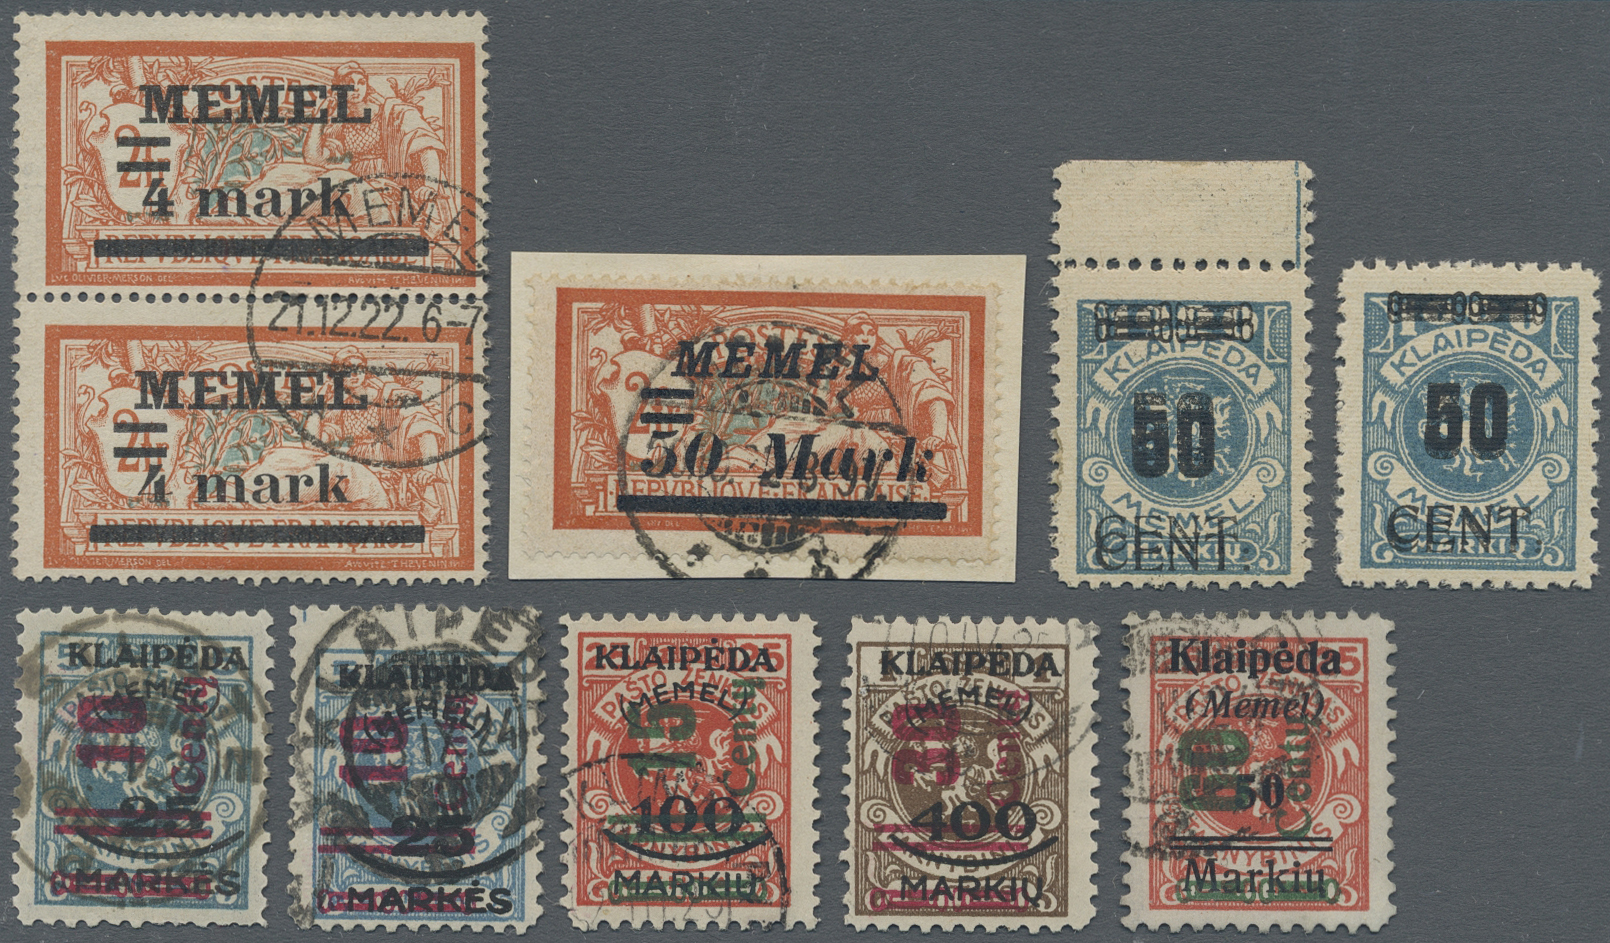 Lot 37072 - Memel  -  Auktionshaus Christoph Gärtner GmbH & Co. KG Sale #44 Collections Germany